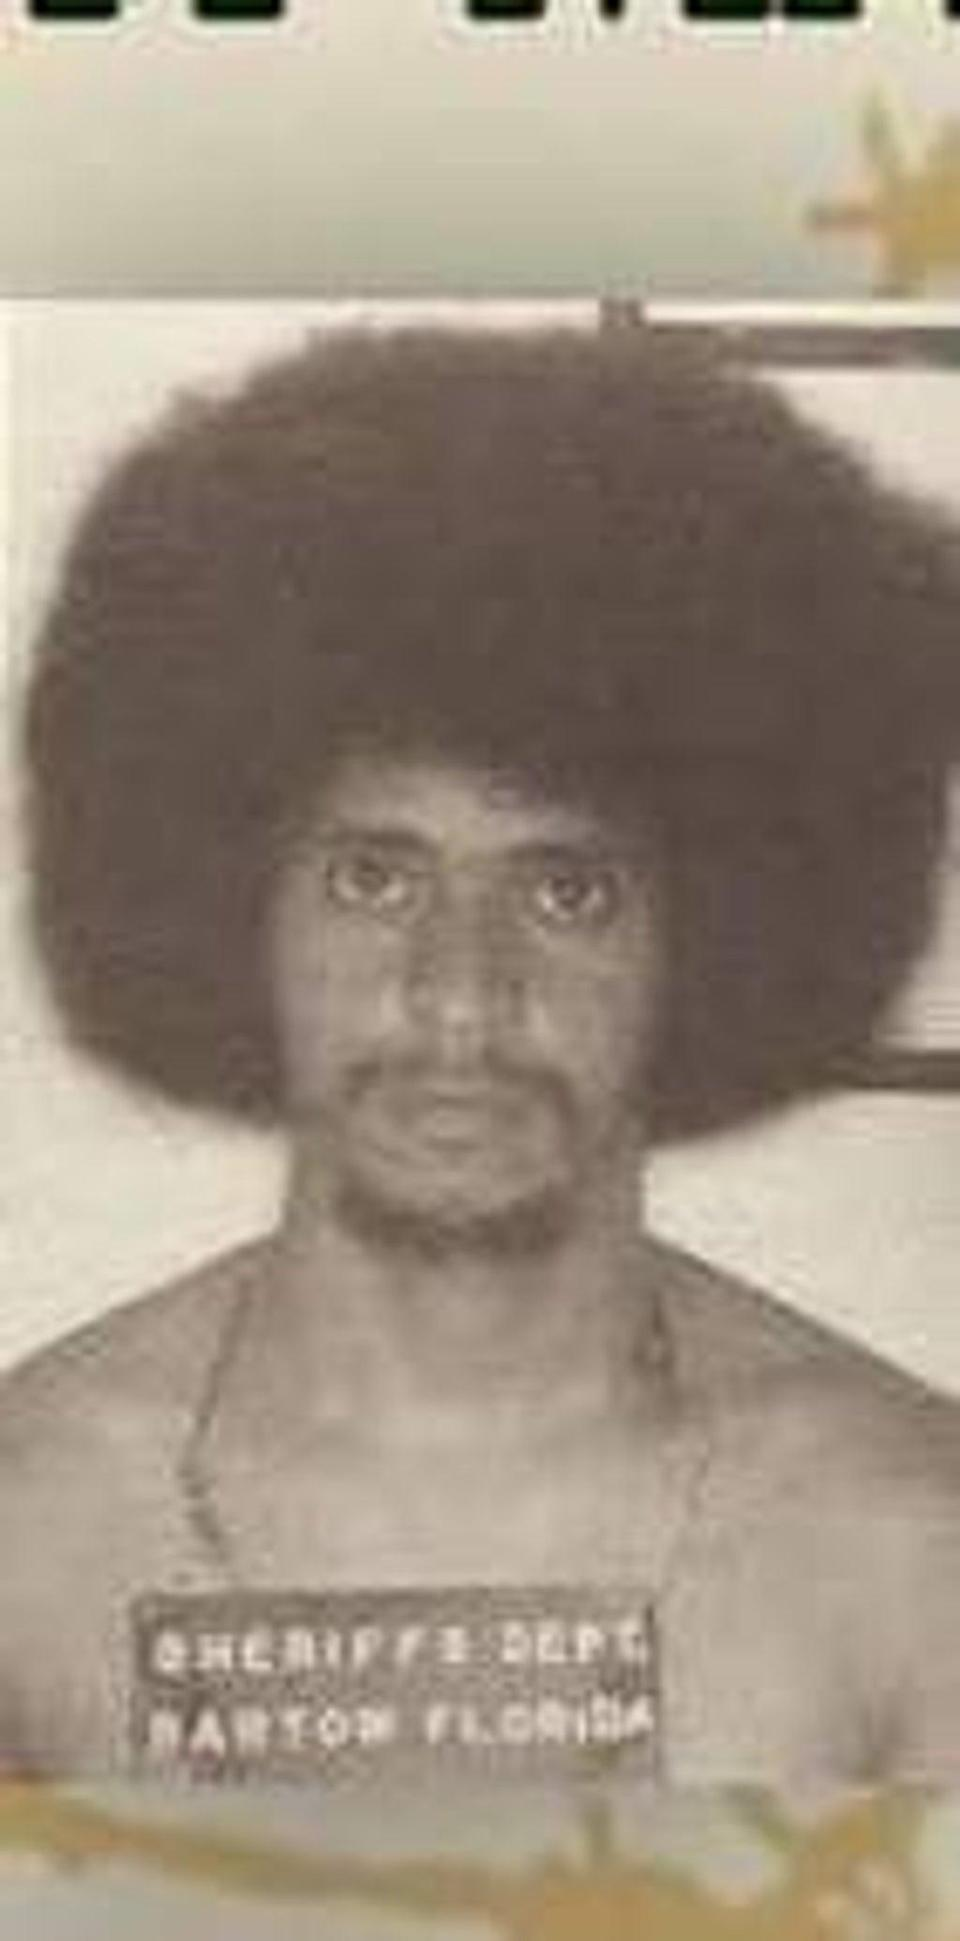 A juror said that a photo of Juan Melendez with an afro convinced her he was guilty, sending him to death row for a crime he didn't commit. (Courtesy of Judi Caruso)